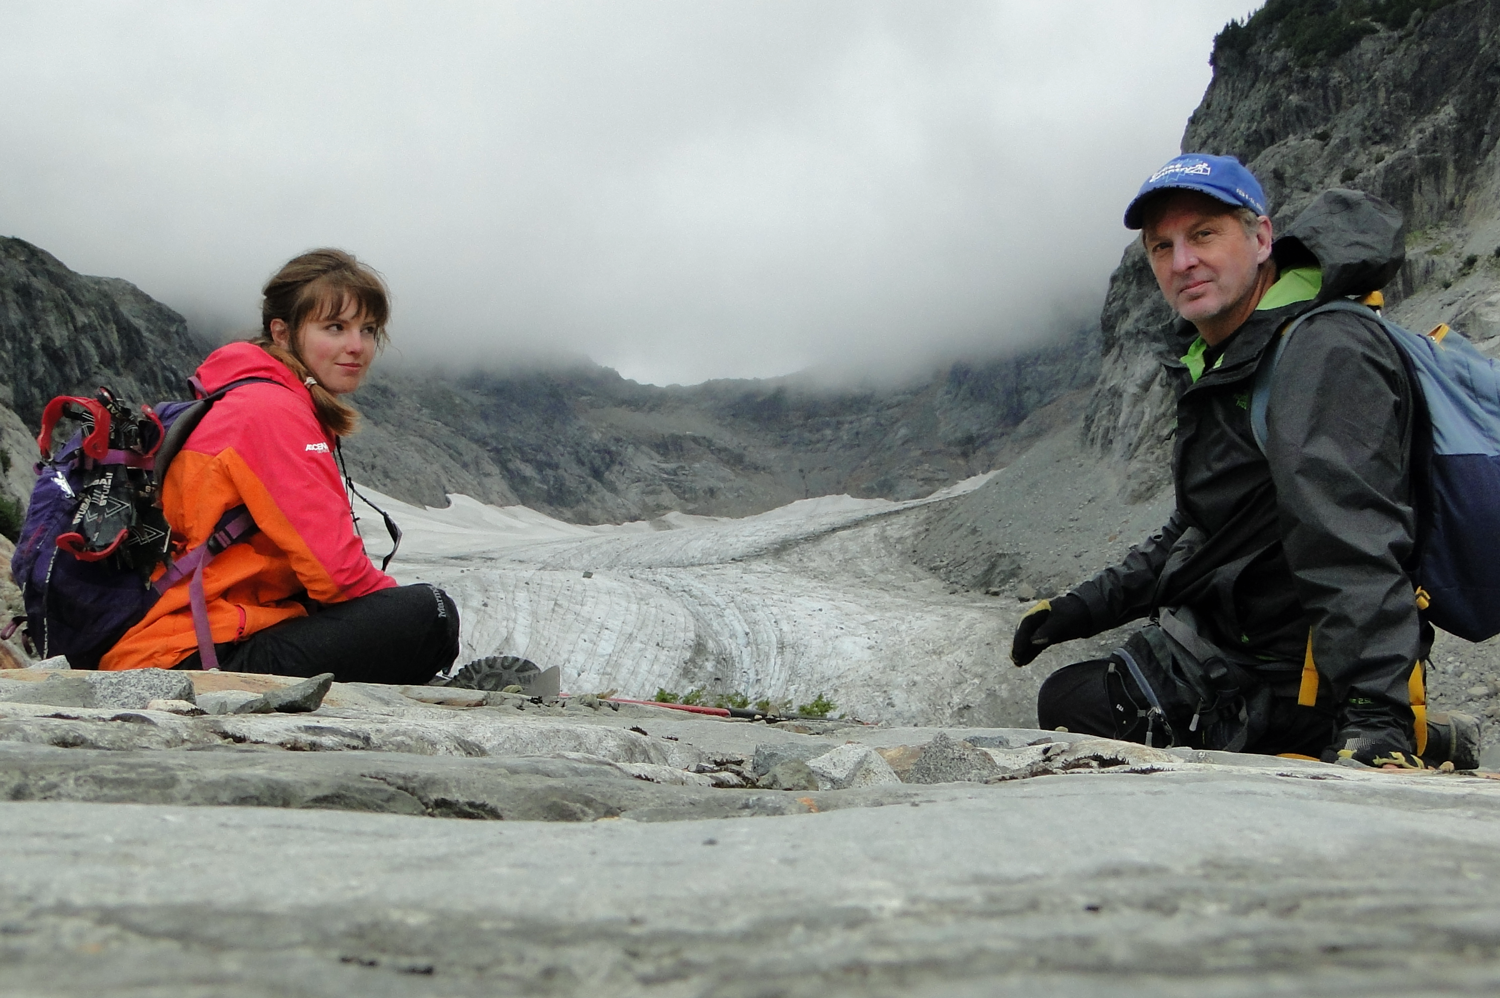 photo of Jill and Mauri Pelto sitting on a glacier wearing backpacks